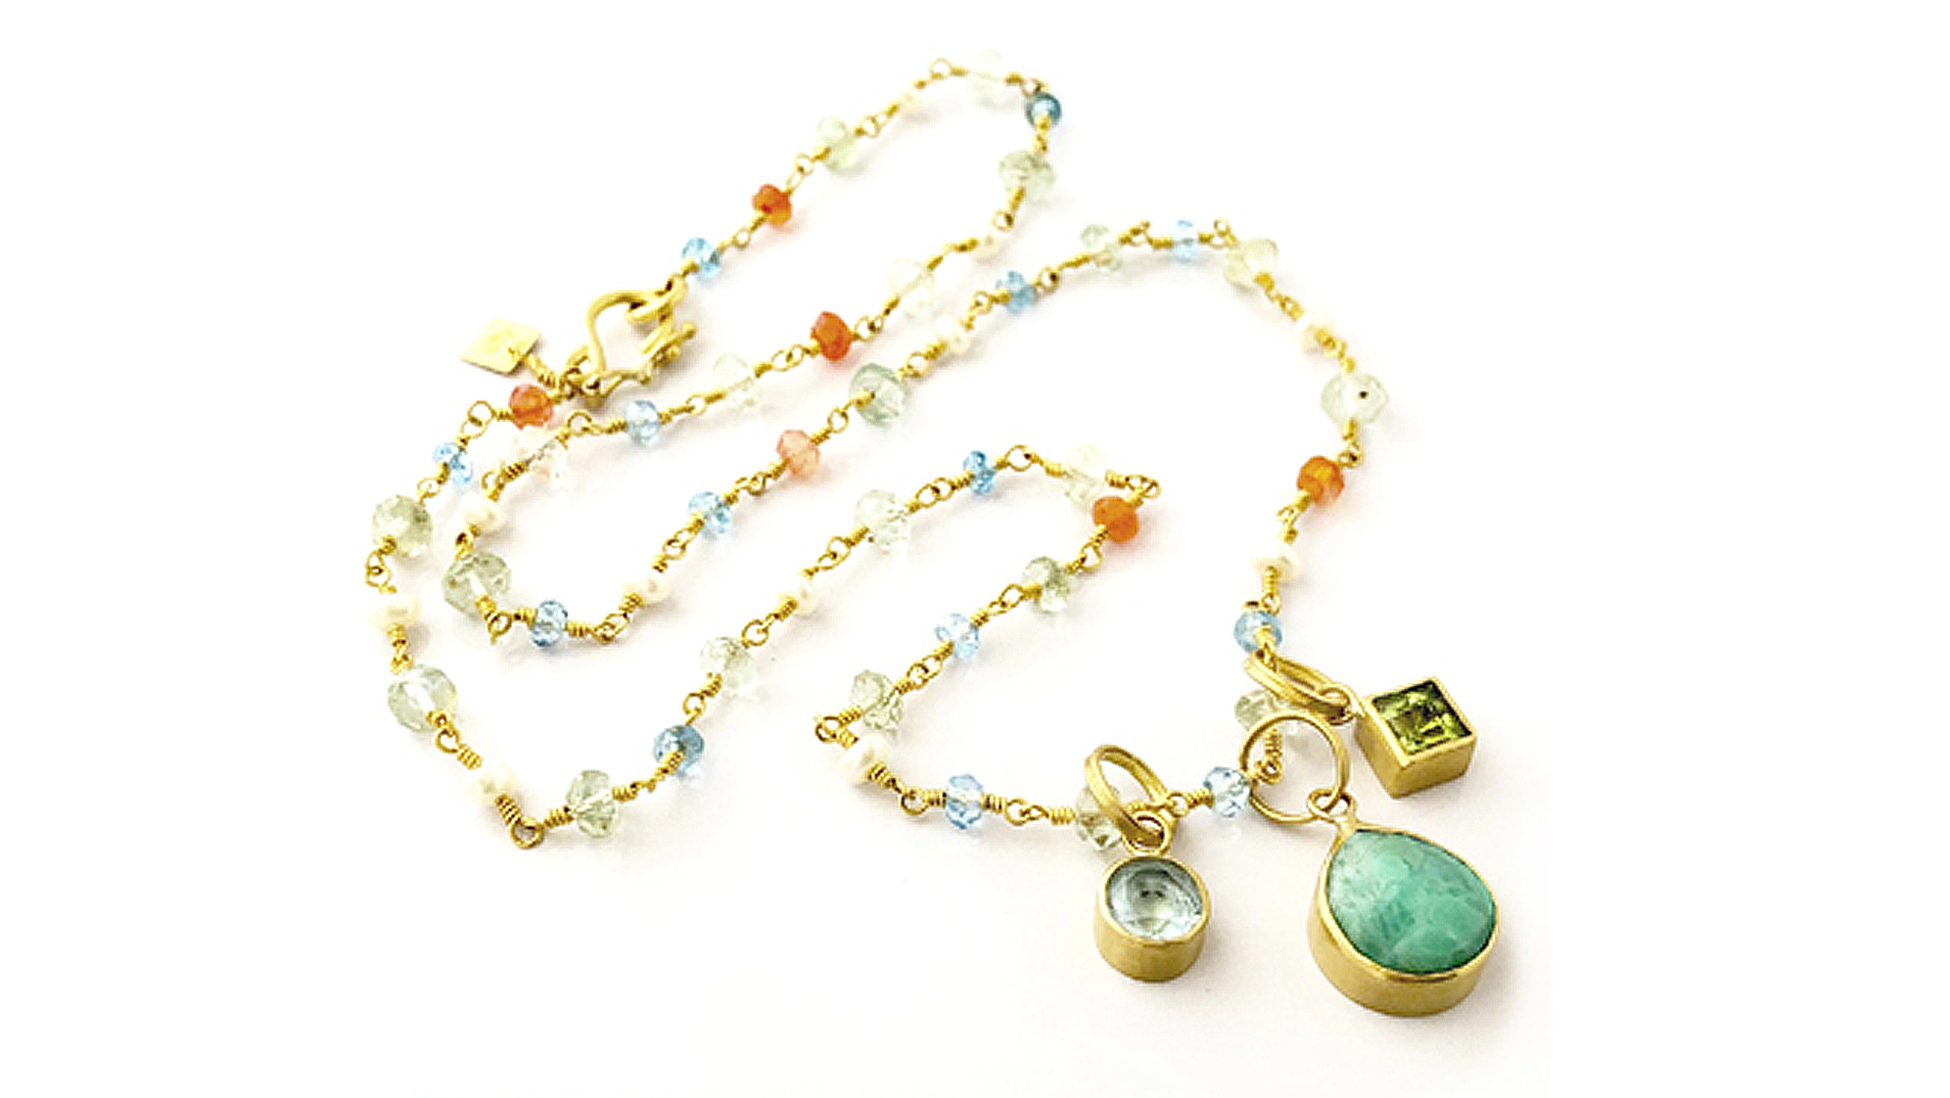 Custom Blue Topaz, Chrysoprase, Peridot Pendant in 22k Gold Mother's Necklace | Katy Beh Jewelry New Orleans 6x6x72-1